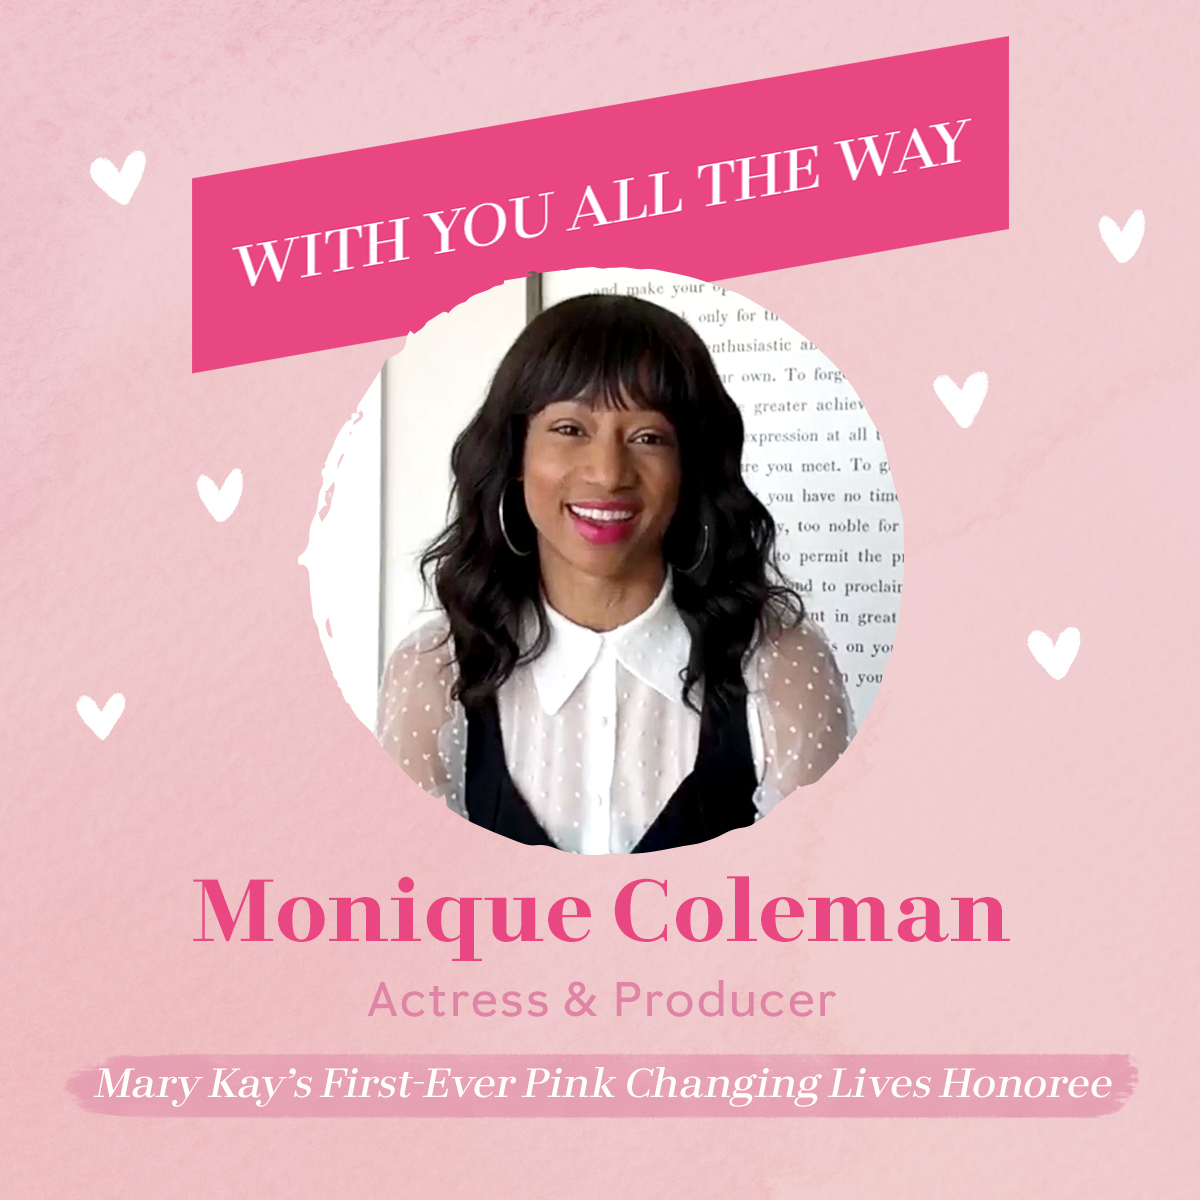 Mary Kay is ✨With You All The Way!✨ Join the brilliant Monique Coleman as she shares tips for building habits that foster self-reflection and growth. Hit the link to enjoy the whole video! 💖 https://t.co/RBYdsVFhGN https://t.co/s8ccixjpWY